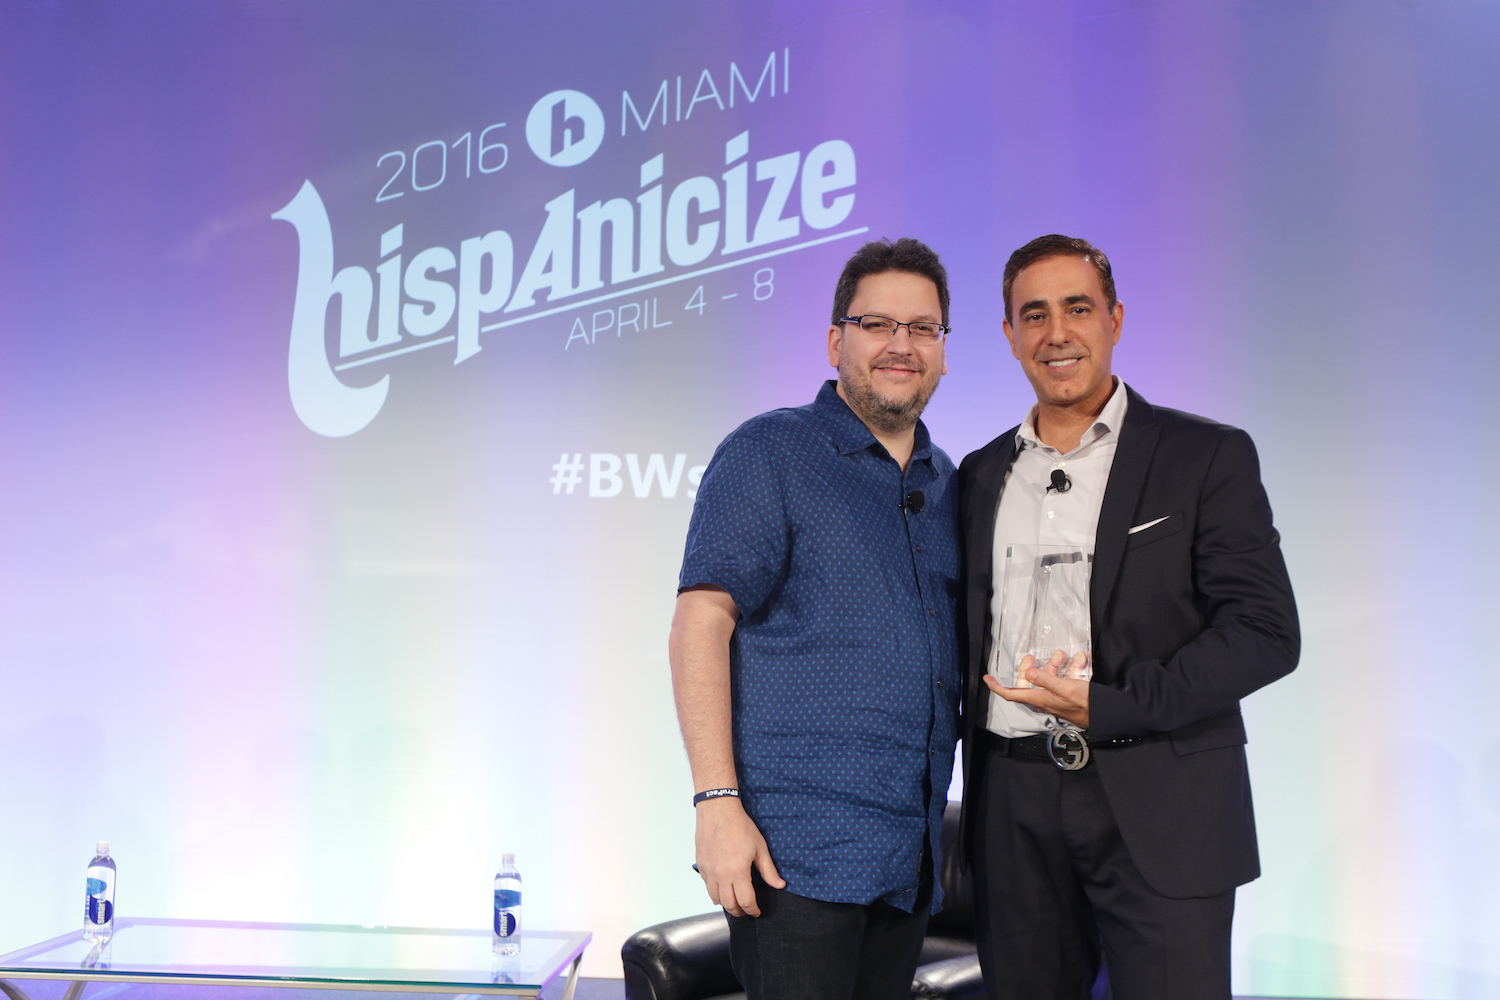 hispanicize-photos-event-miami-14